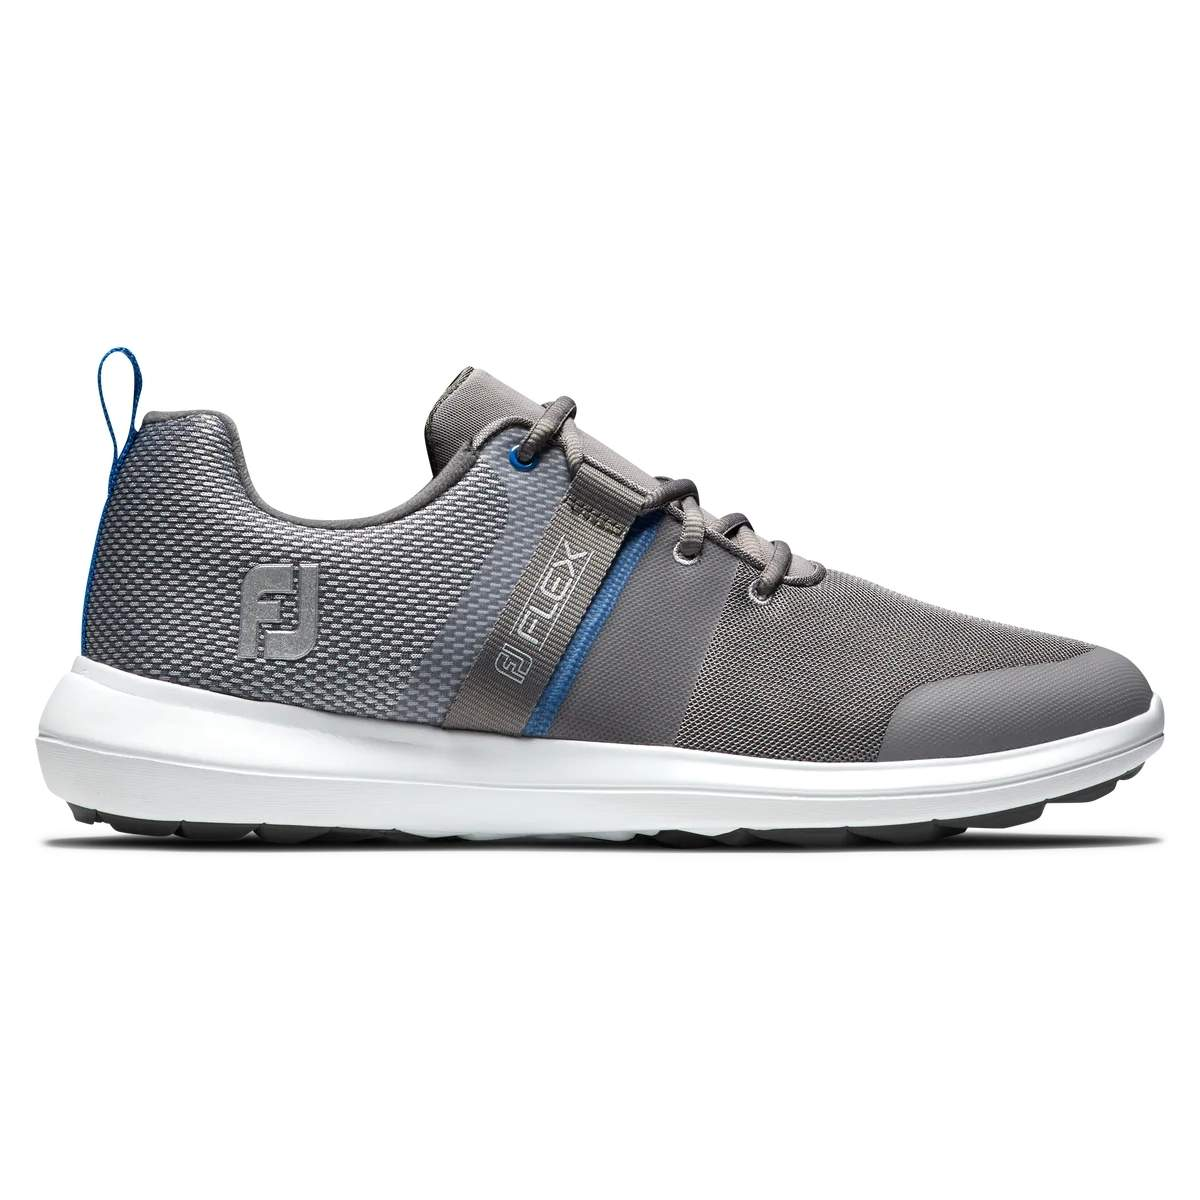 FootJoy Men's Flex Golf Shoe - Grey 56121